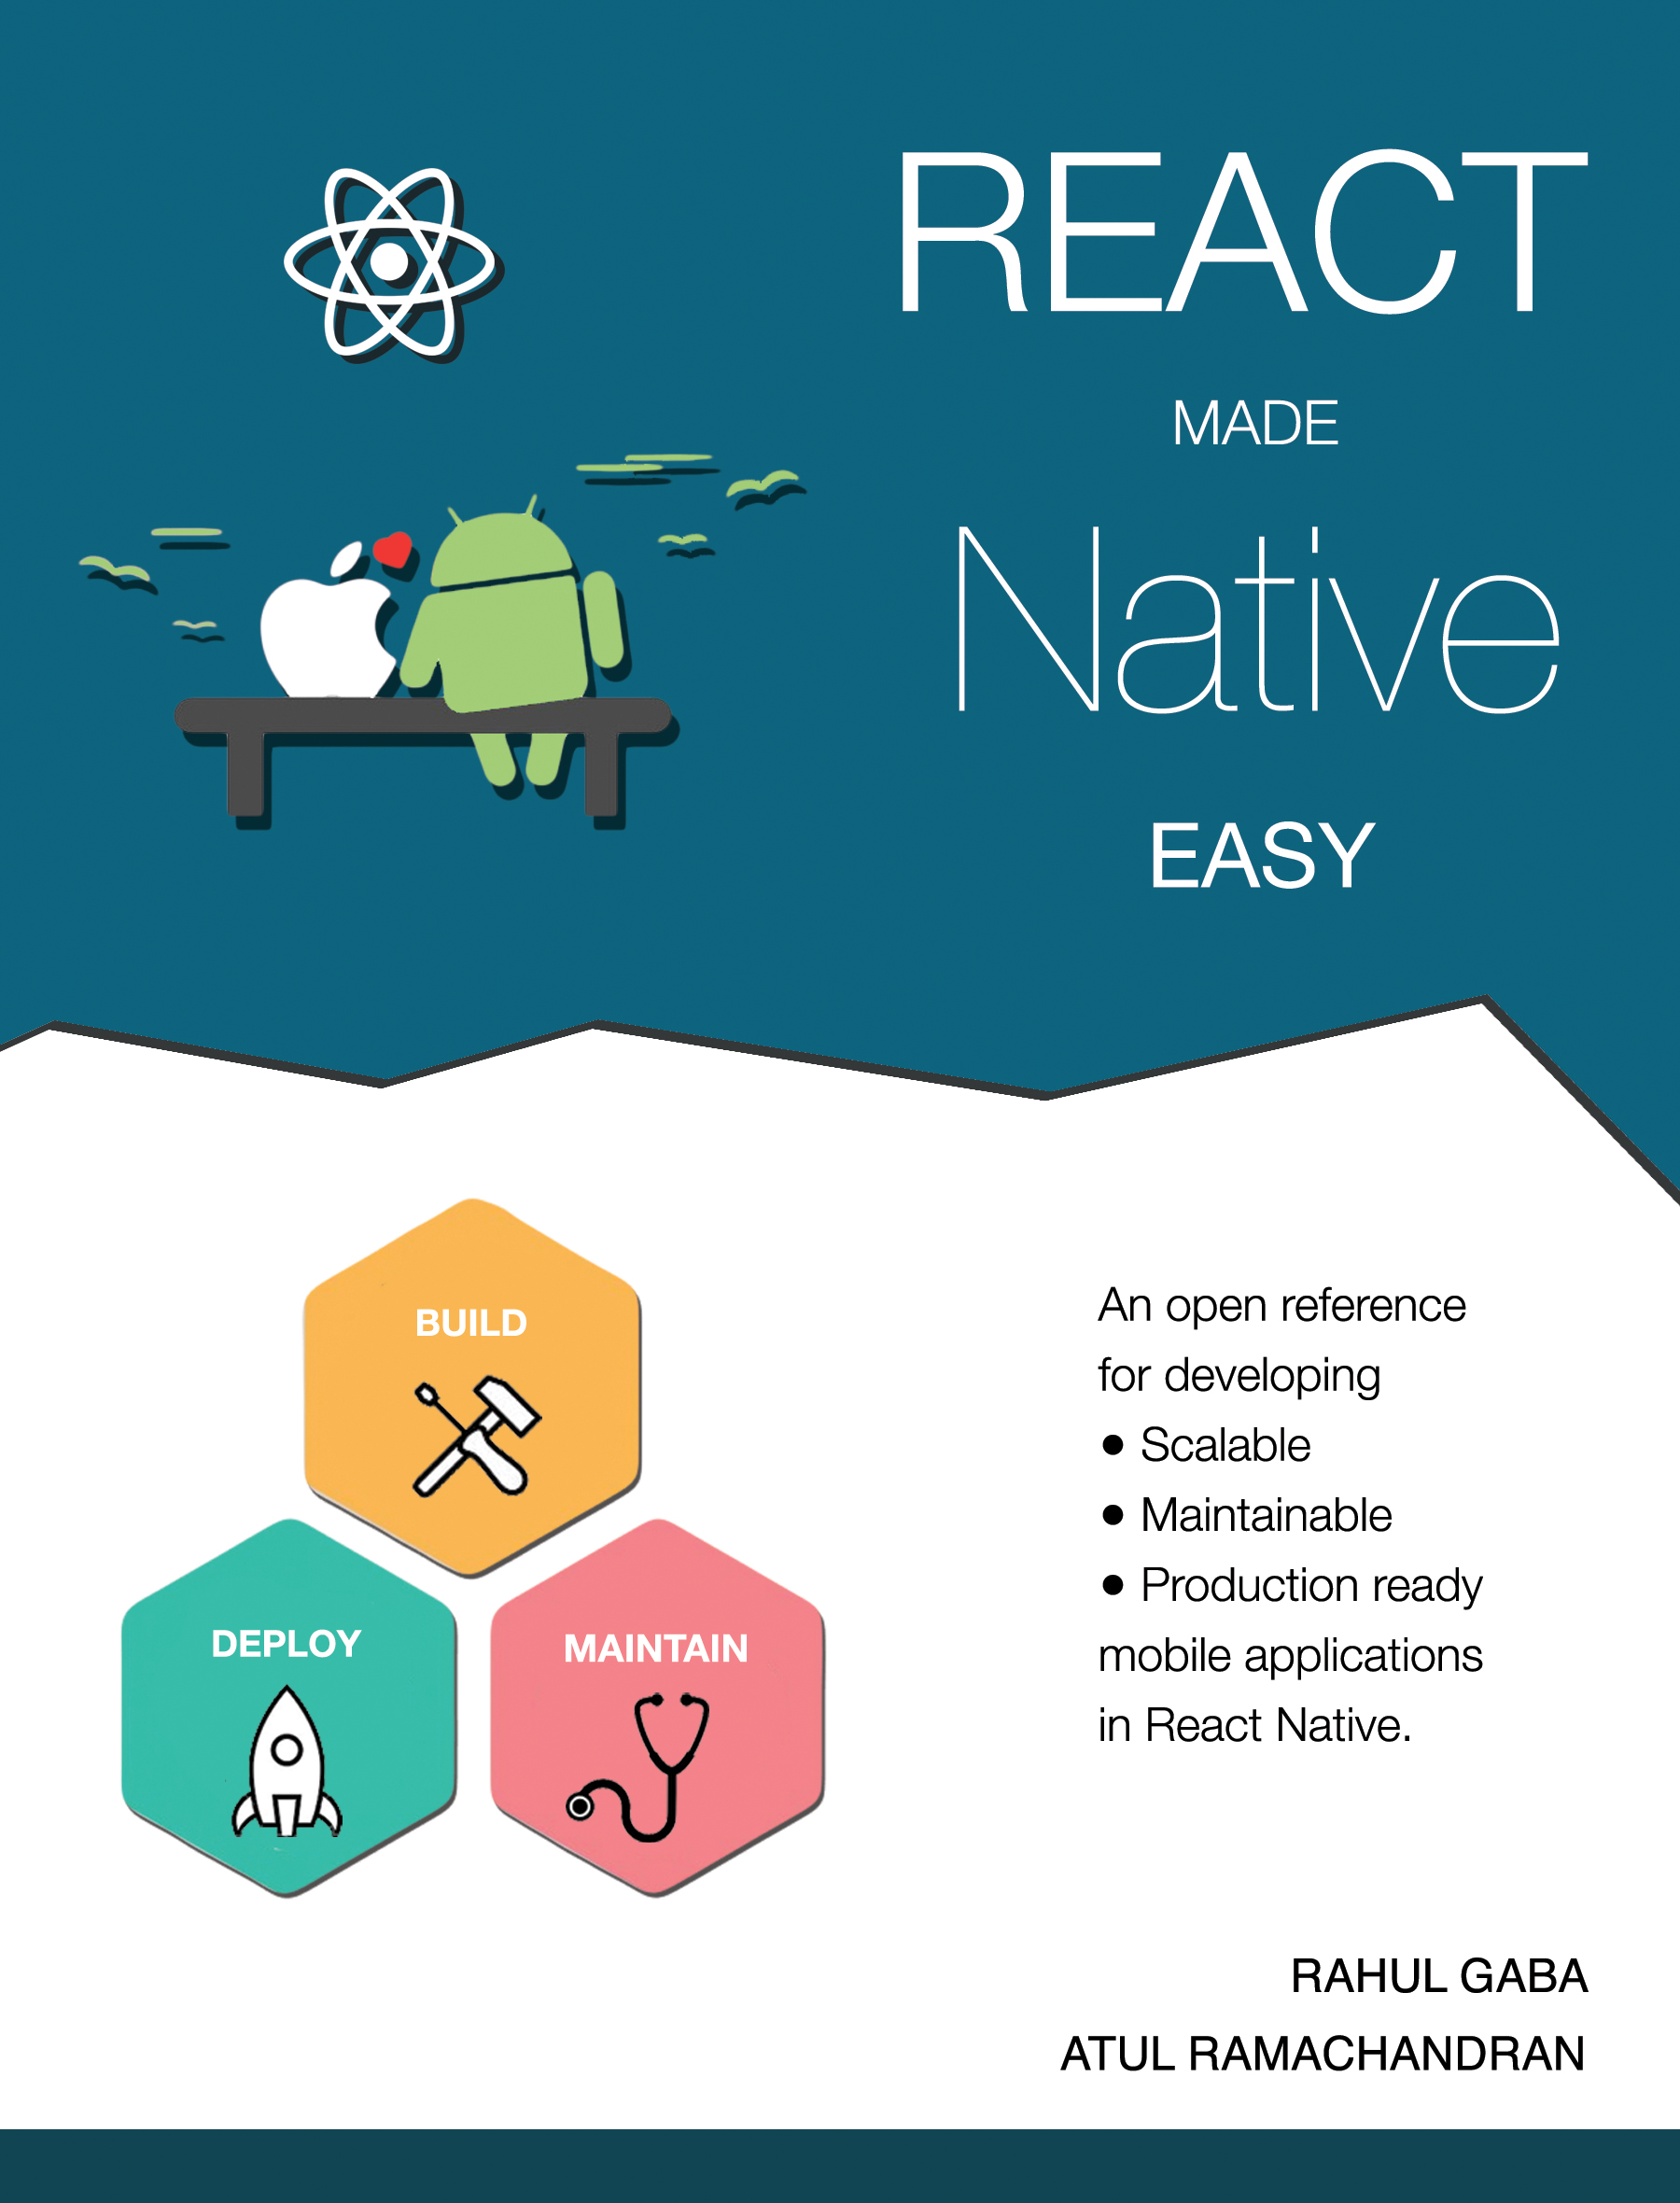 Introduction | React Made Native Easy